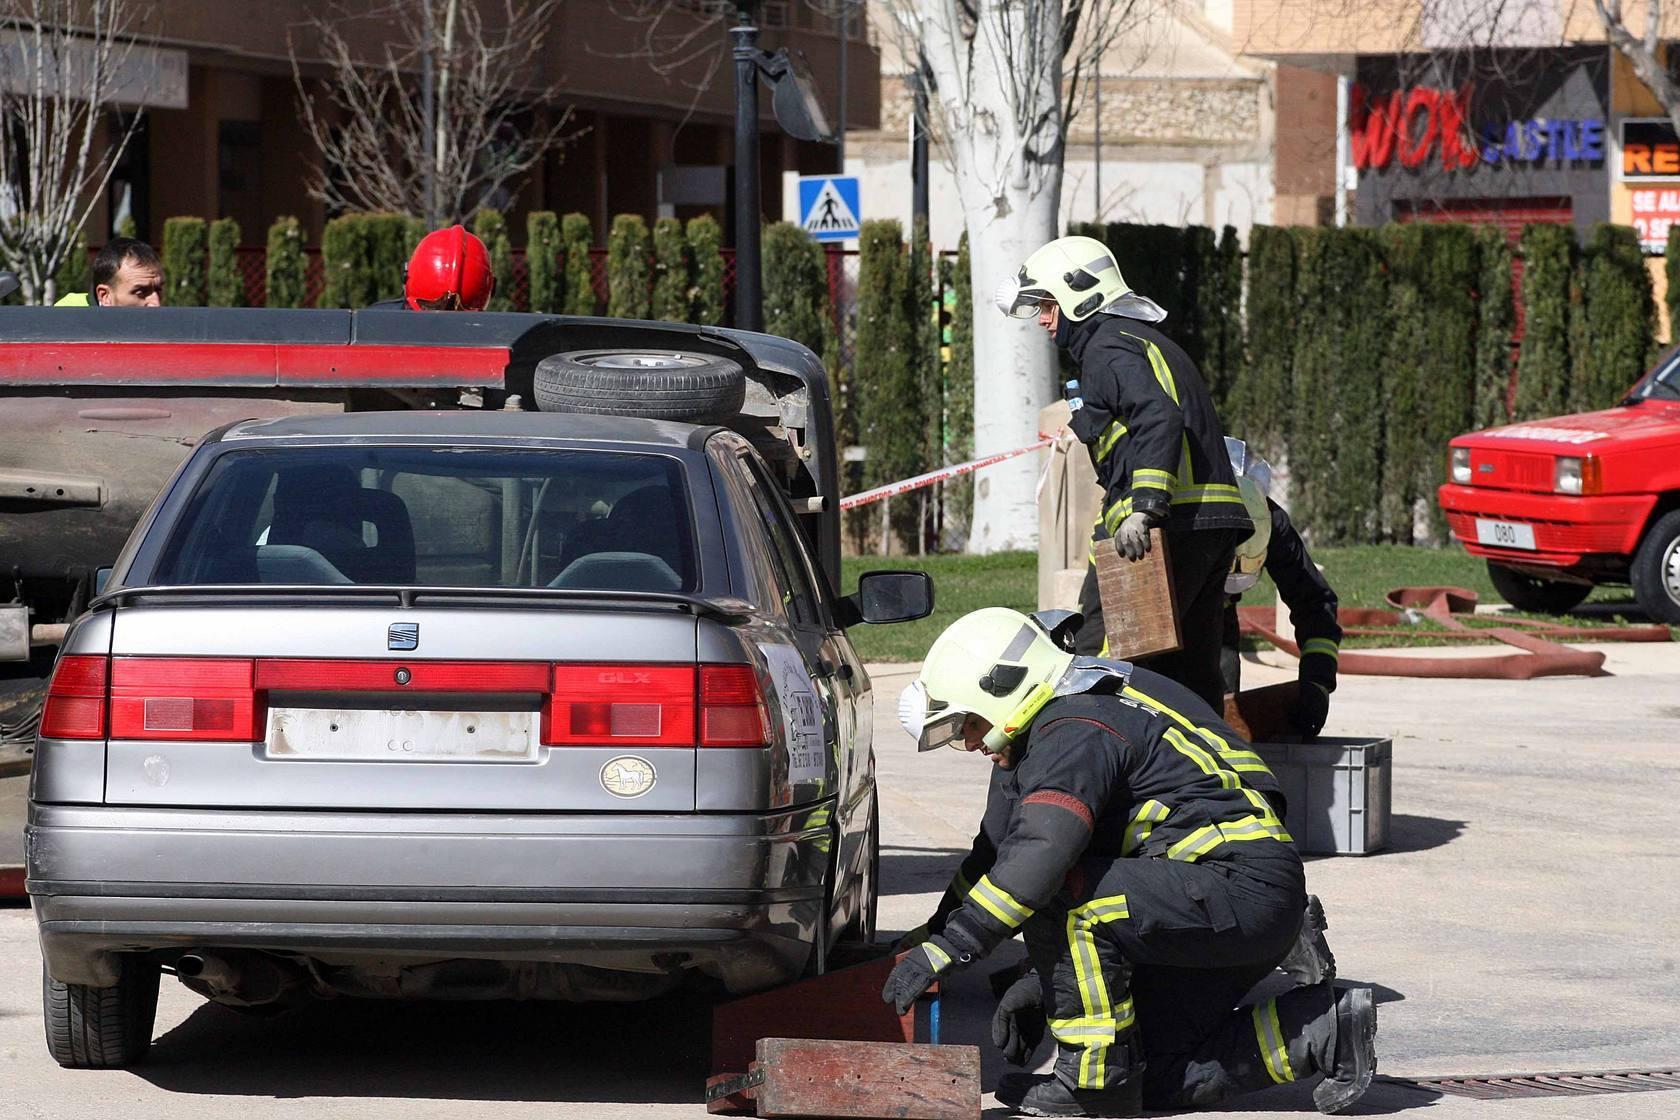 Los bomberos de Albacete realizaron un simulacro de accidentes